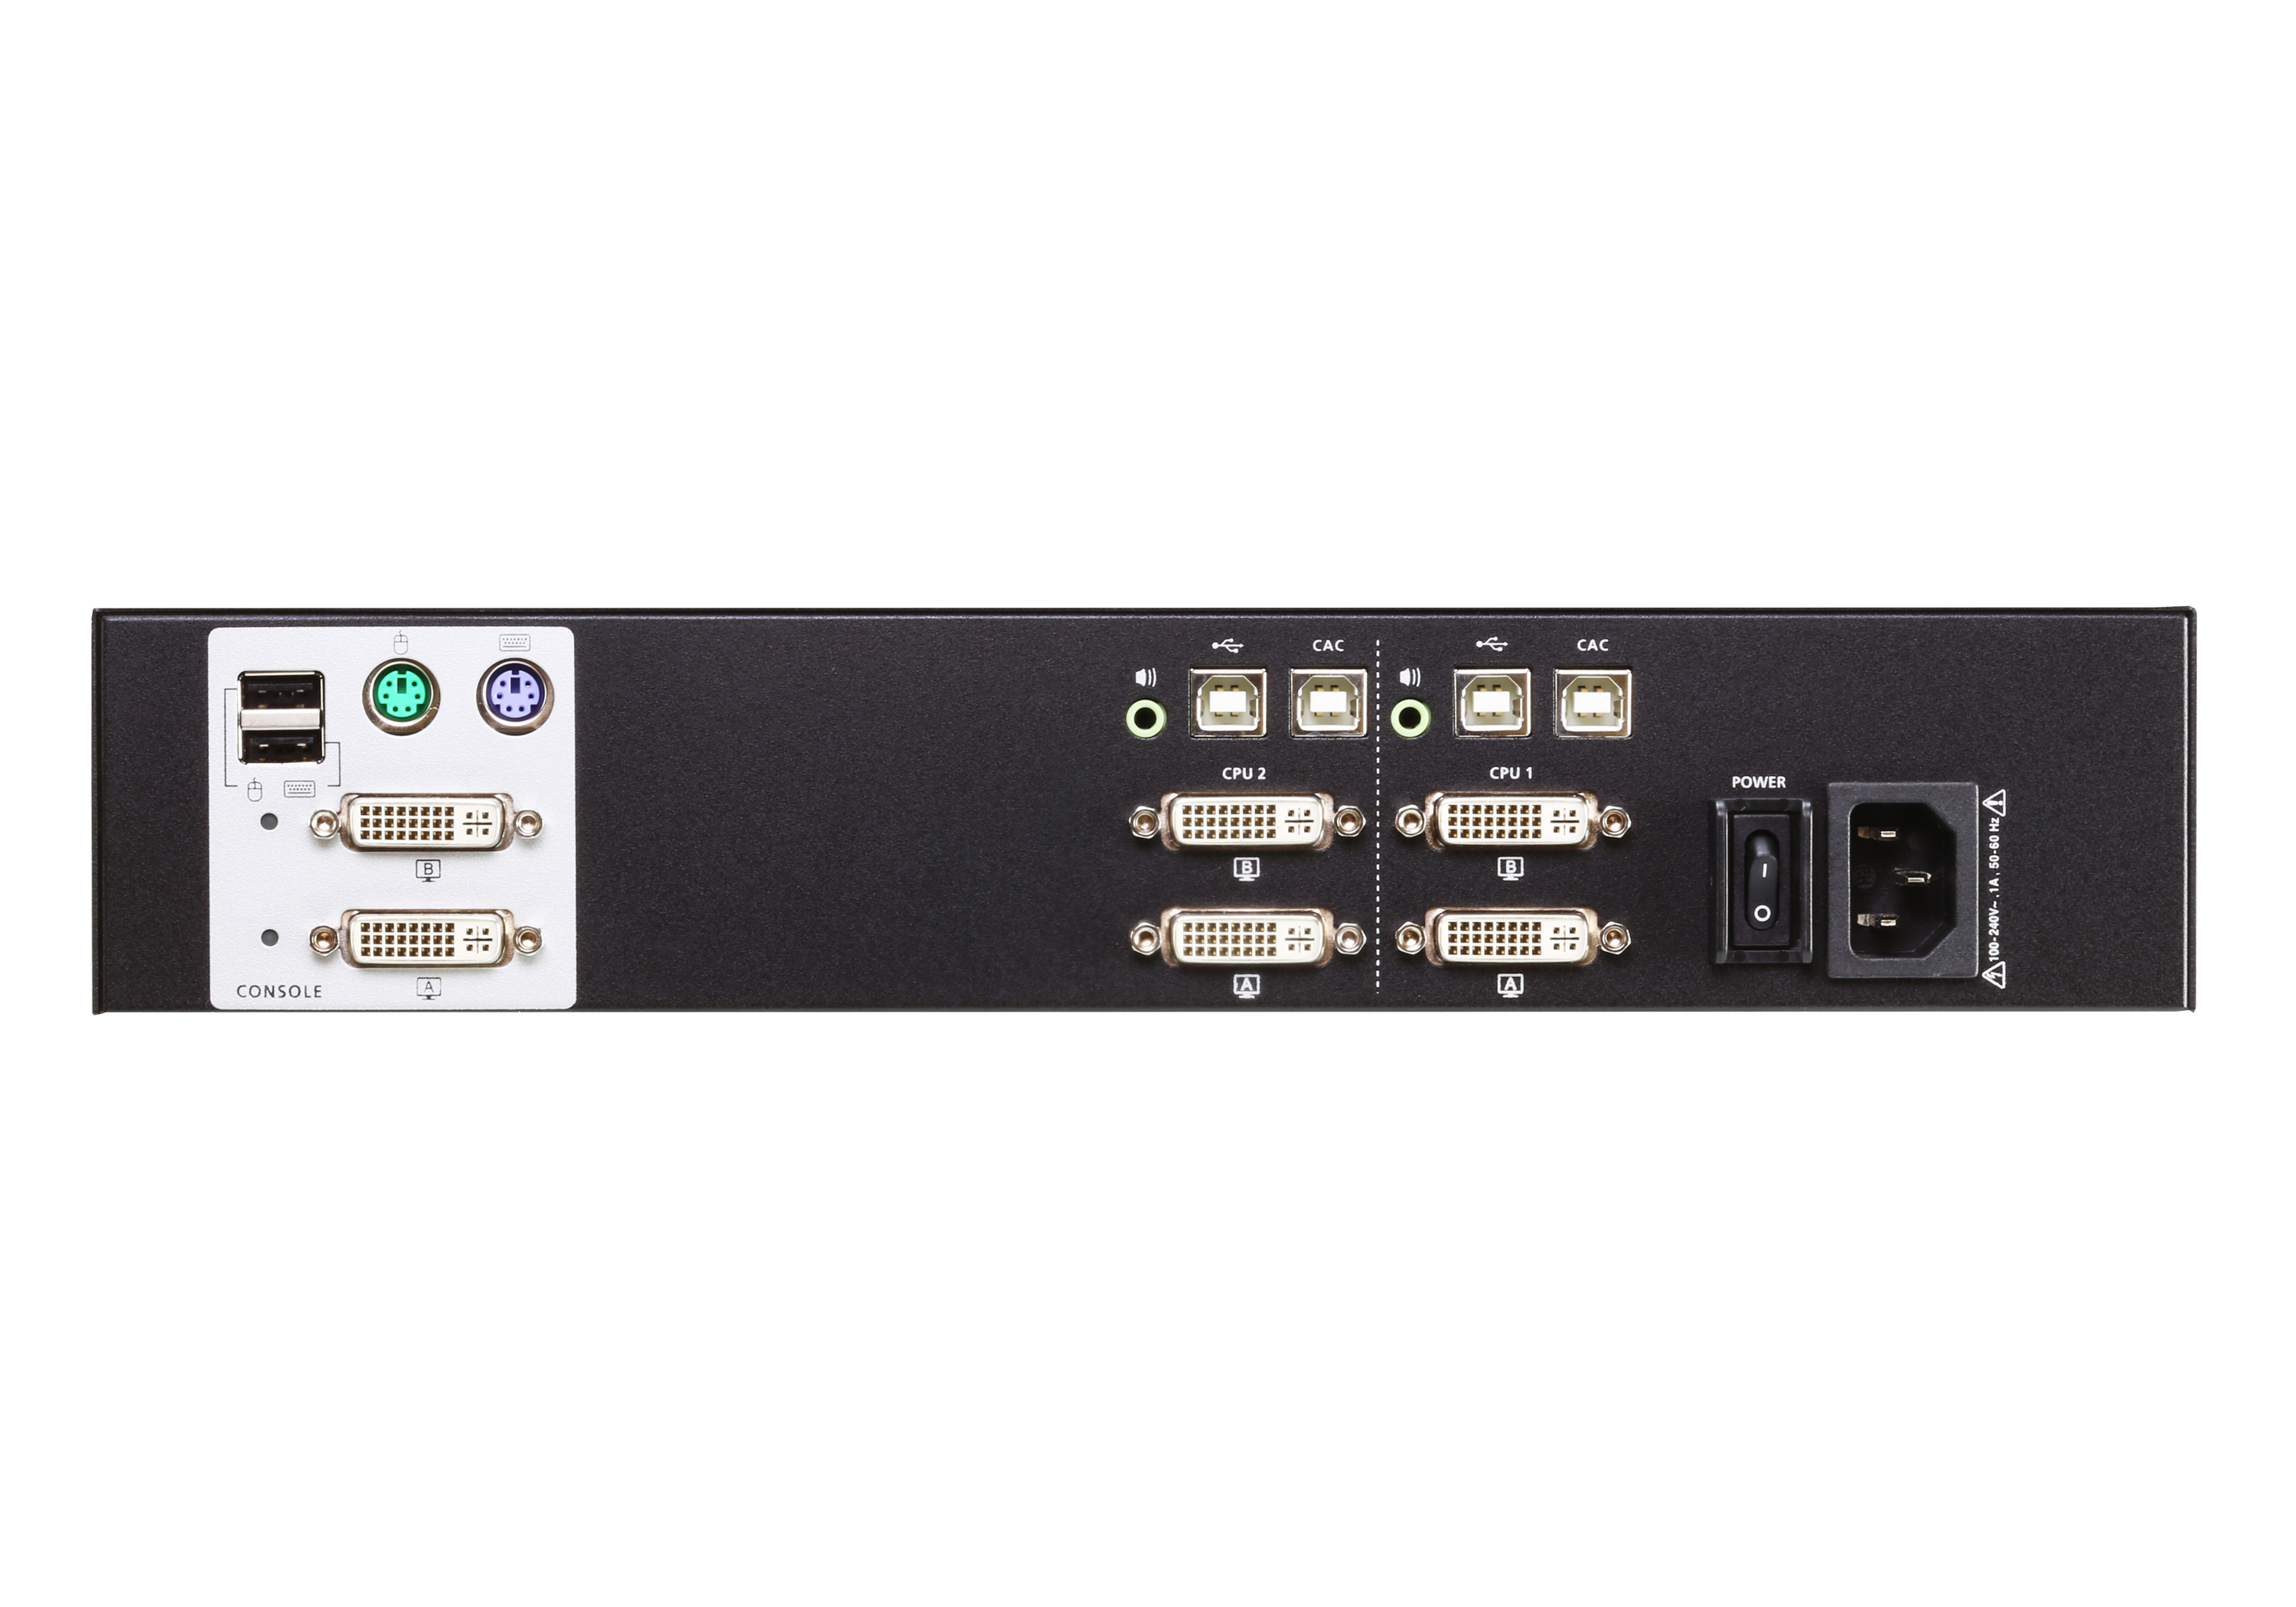 2-Port USB DVI Dual Display Secure KVM Switch (PSS PP v3.0 Compliant)-2